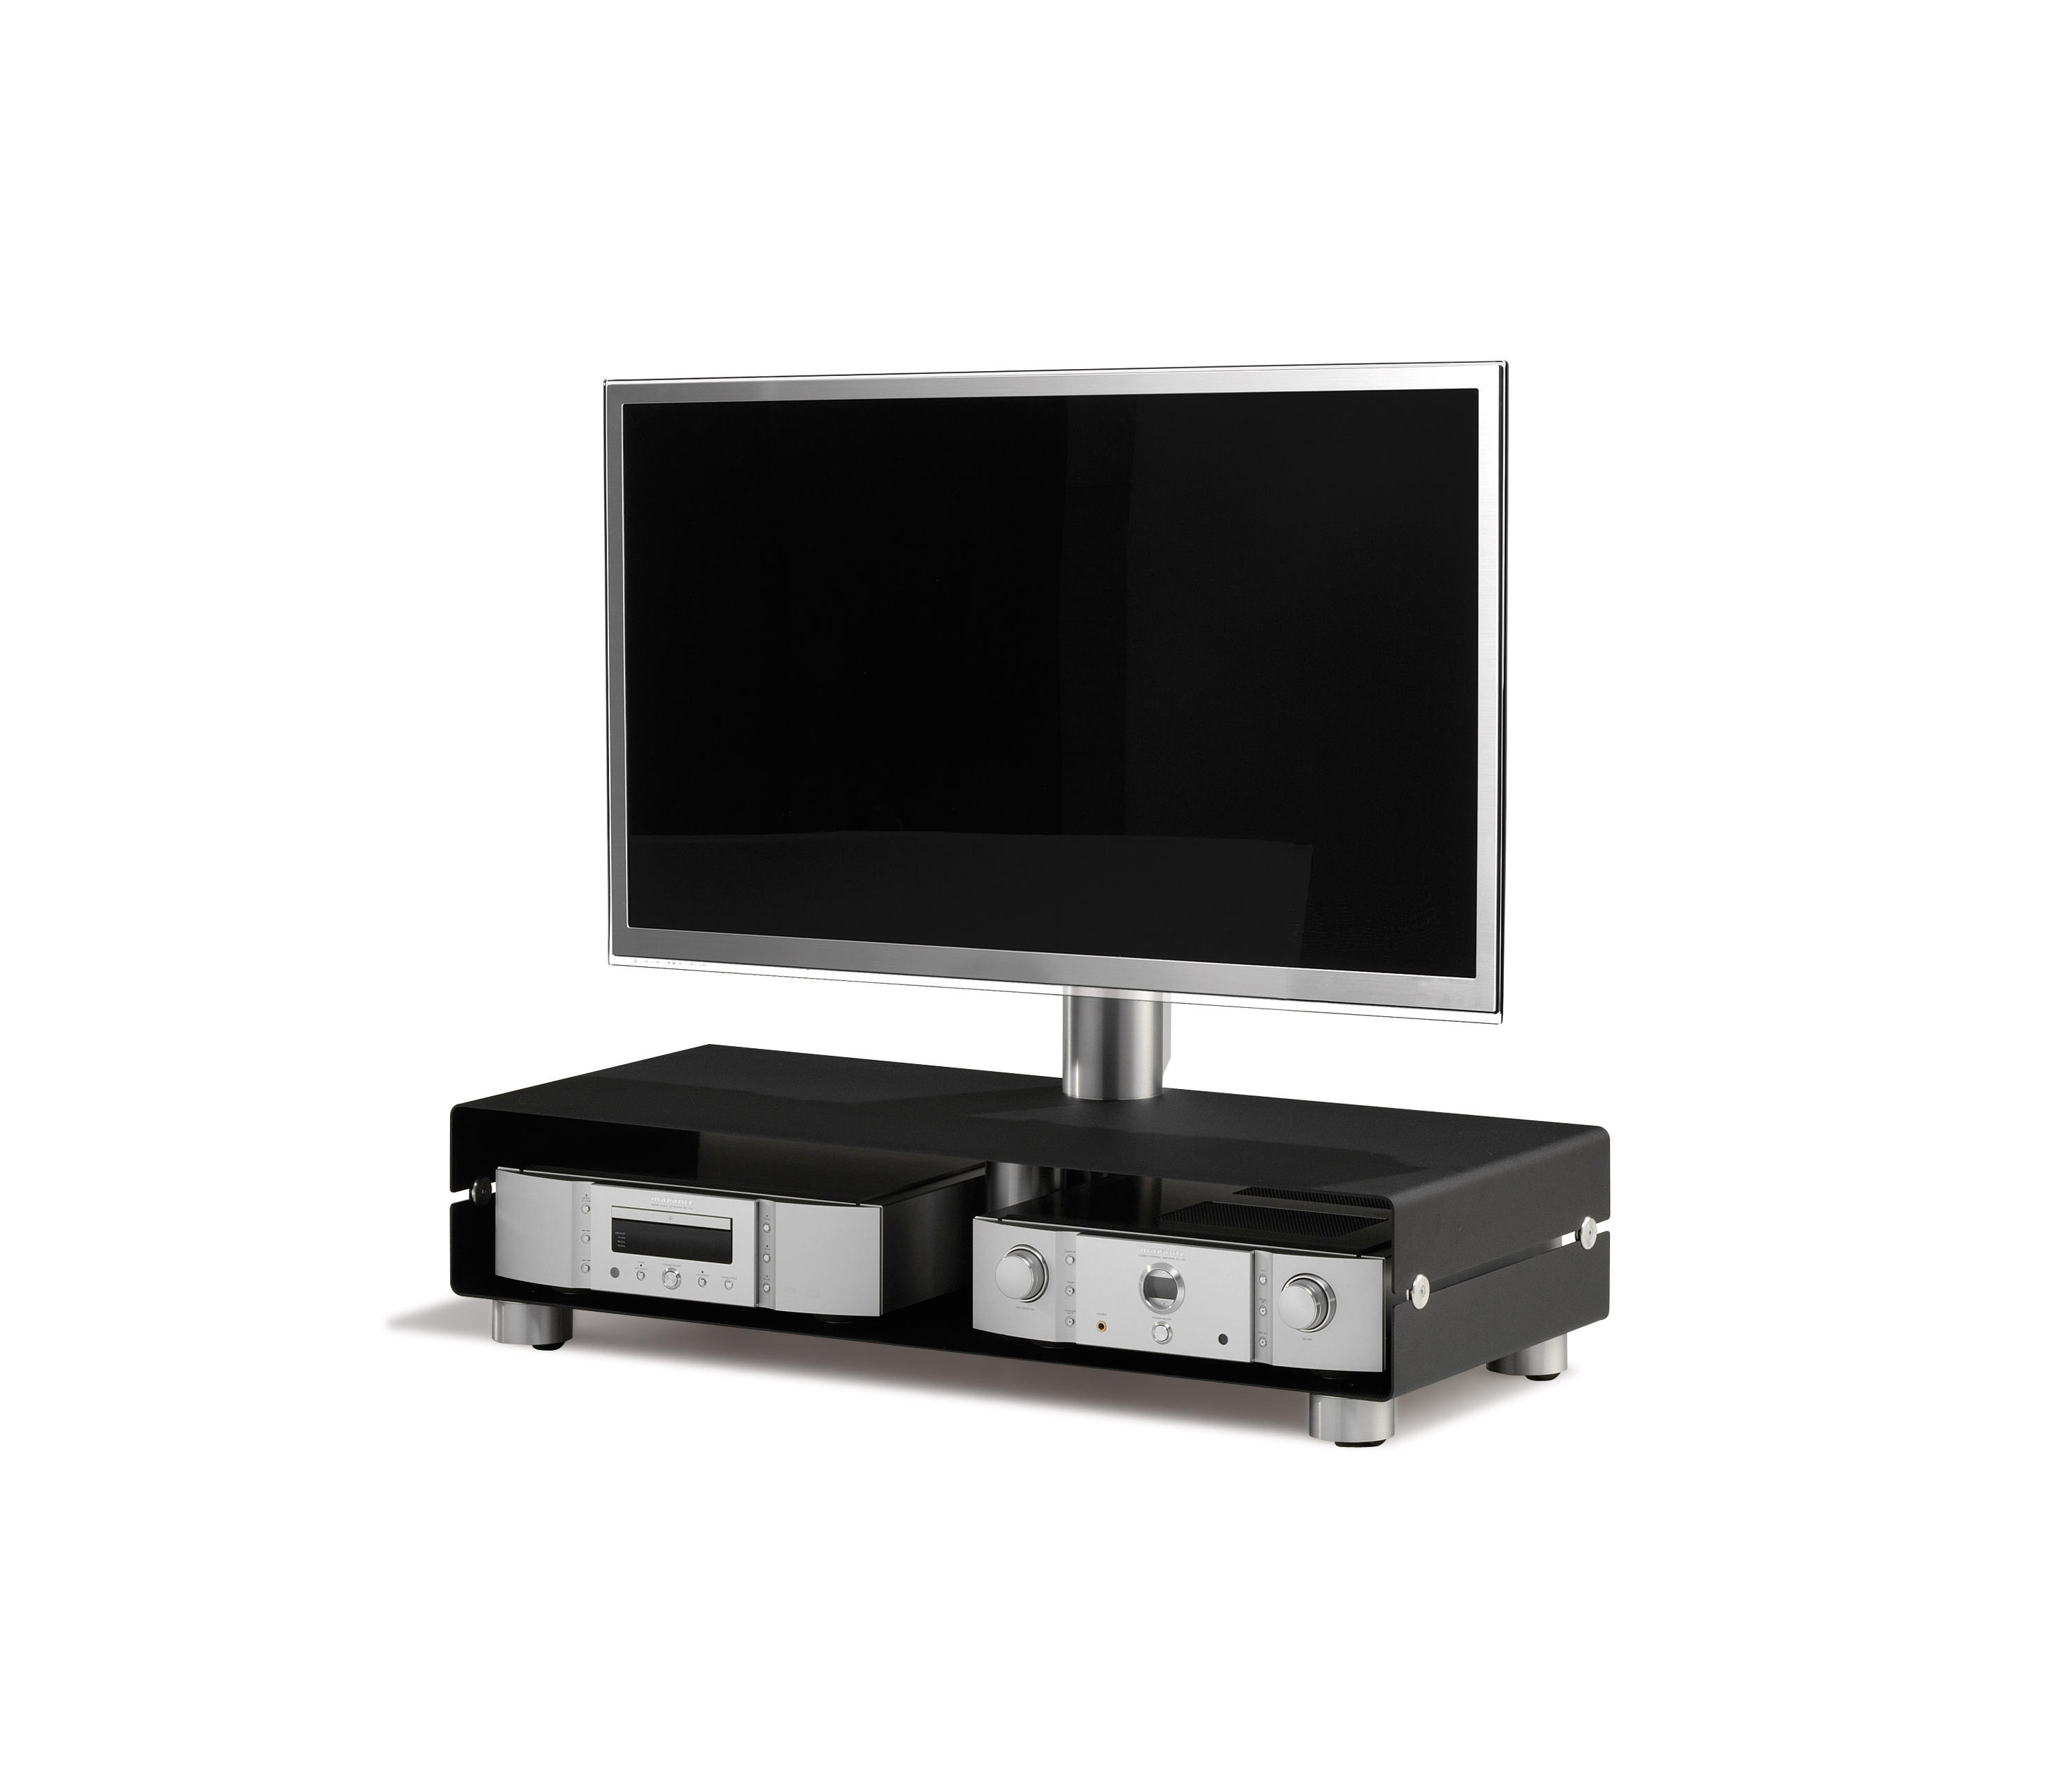 Spectral Porta Tv.Floor Multimedia Stands From Spectral Architonic